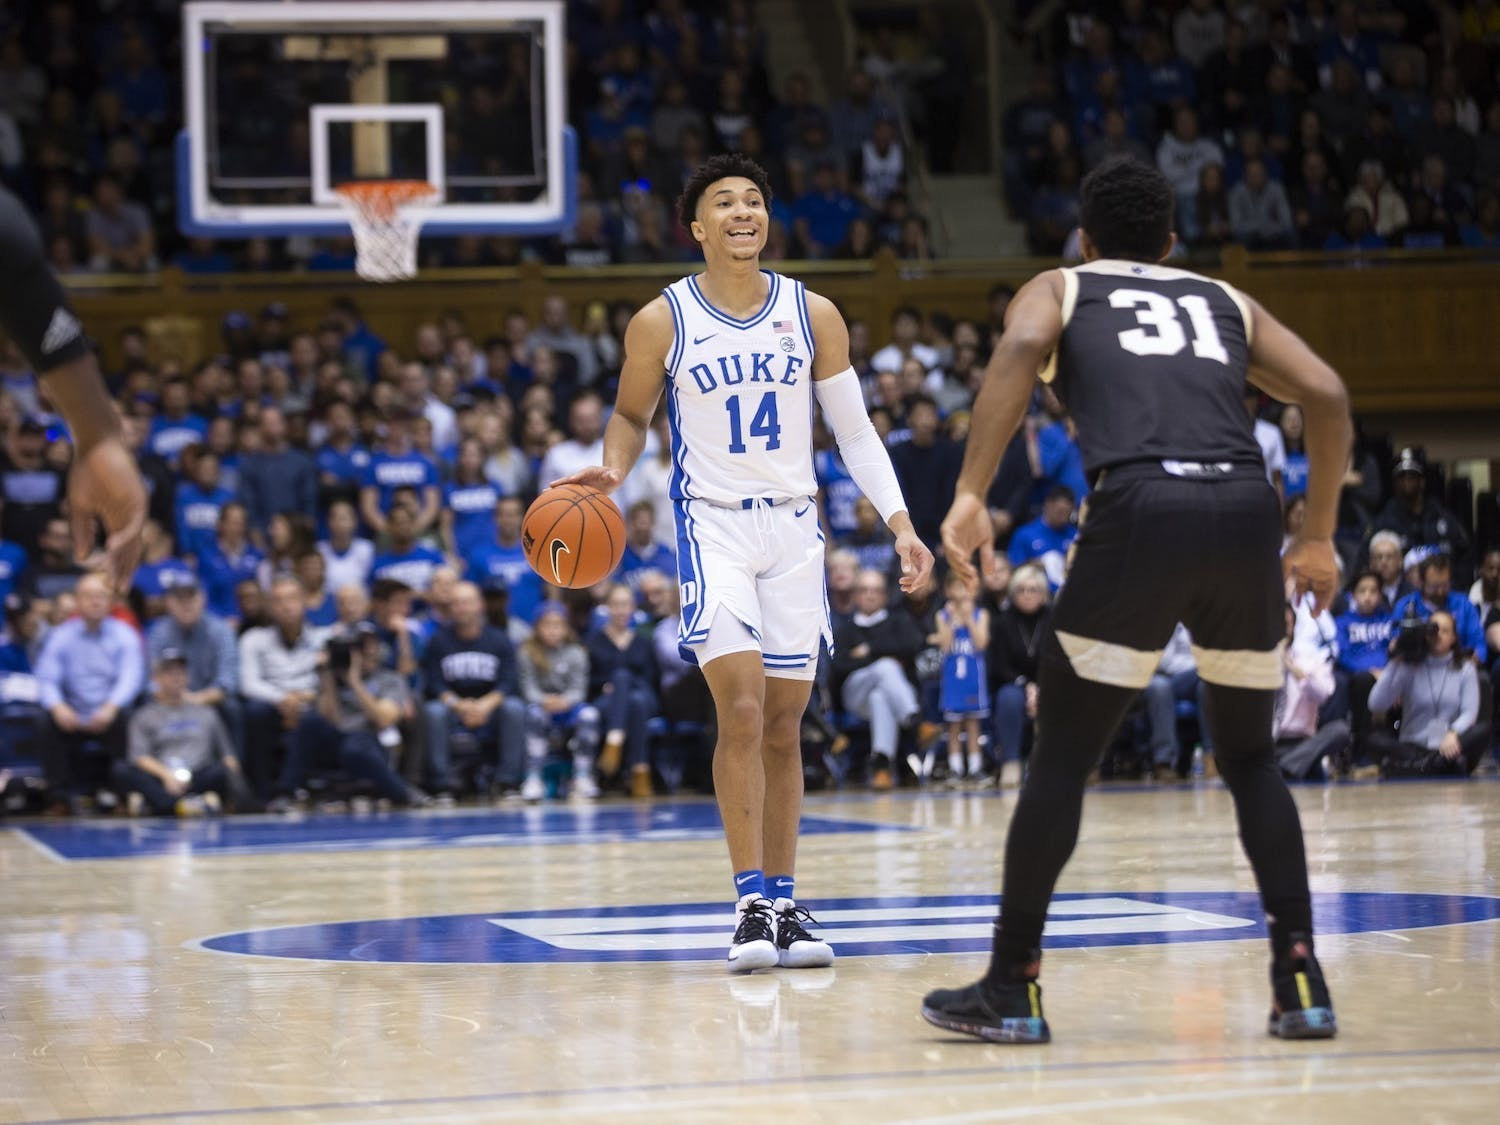 While Jordan Goldwire is not a dynamic offensive player, his impact in terms of on-ball defense and playing the passing lane is hard to understate.